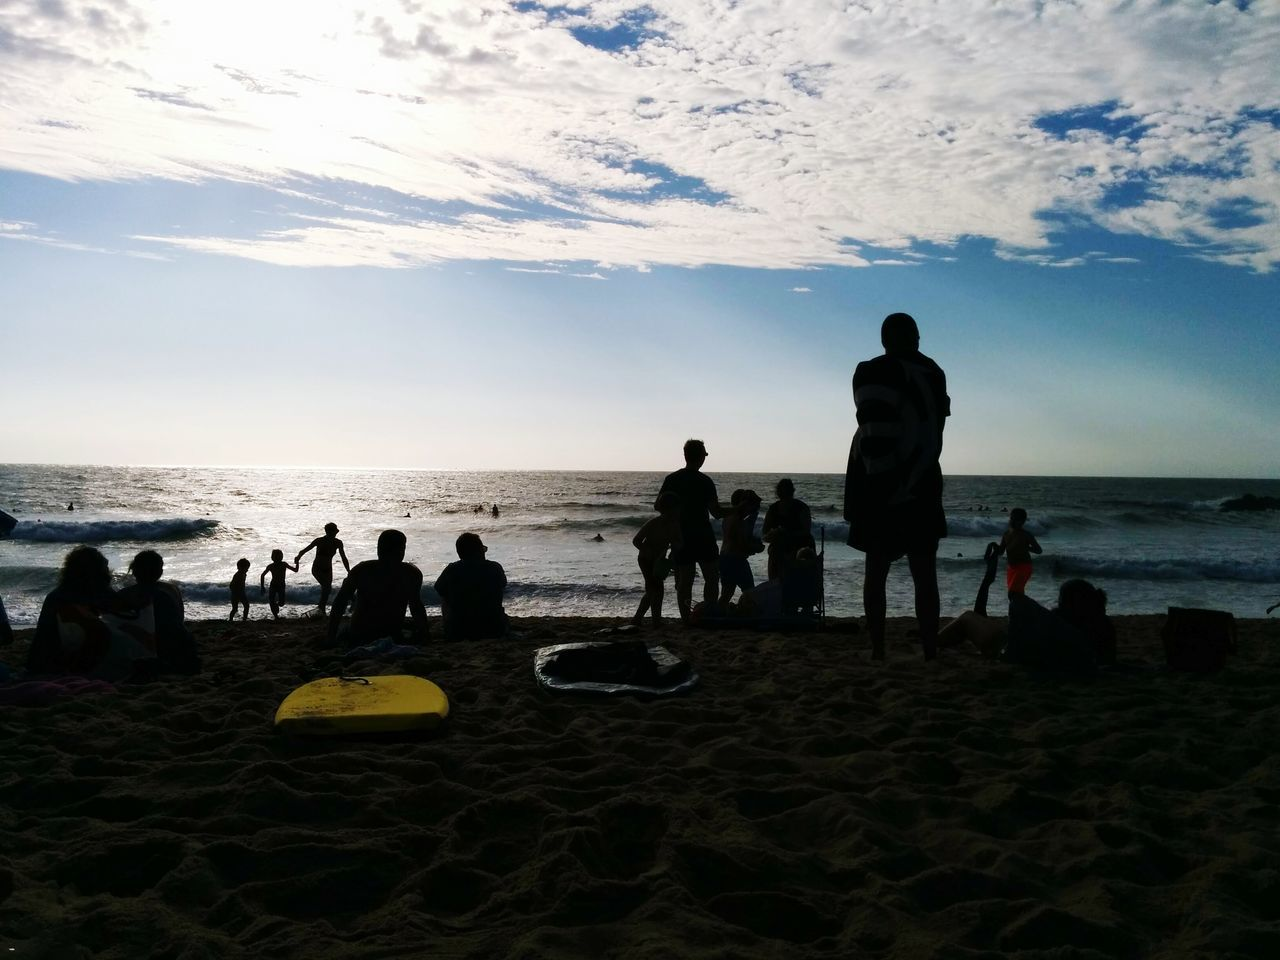 beach, sea, sand, horizon over water, water, shore, vacations, sky, leisure activity, nature, real people, silhouette, men, enjoyment, beauty in nature, standing, outdoors, scenics, lifestyles, large group of people, sunset, childhood, day, wave, people